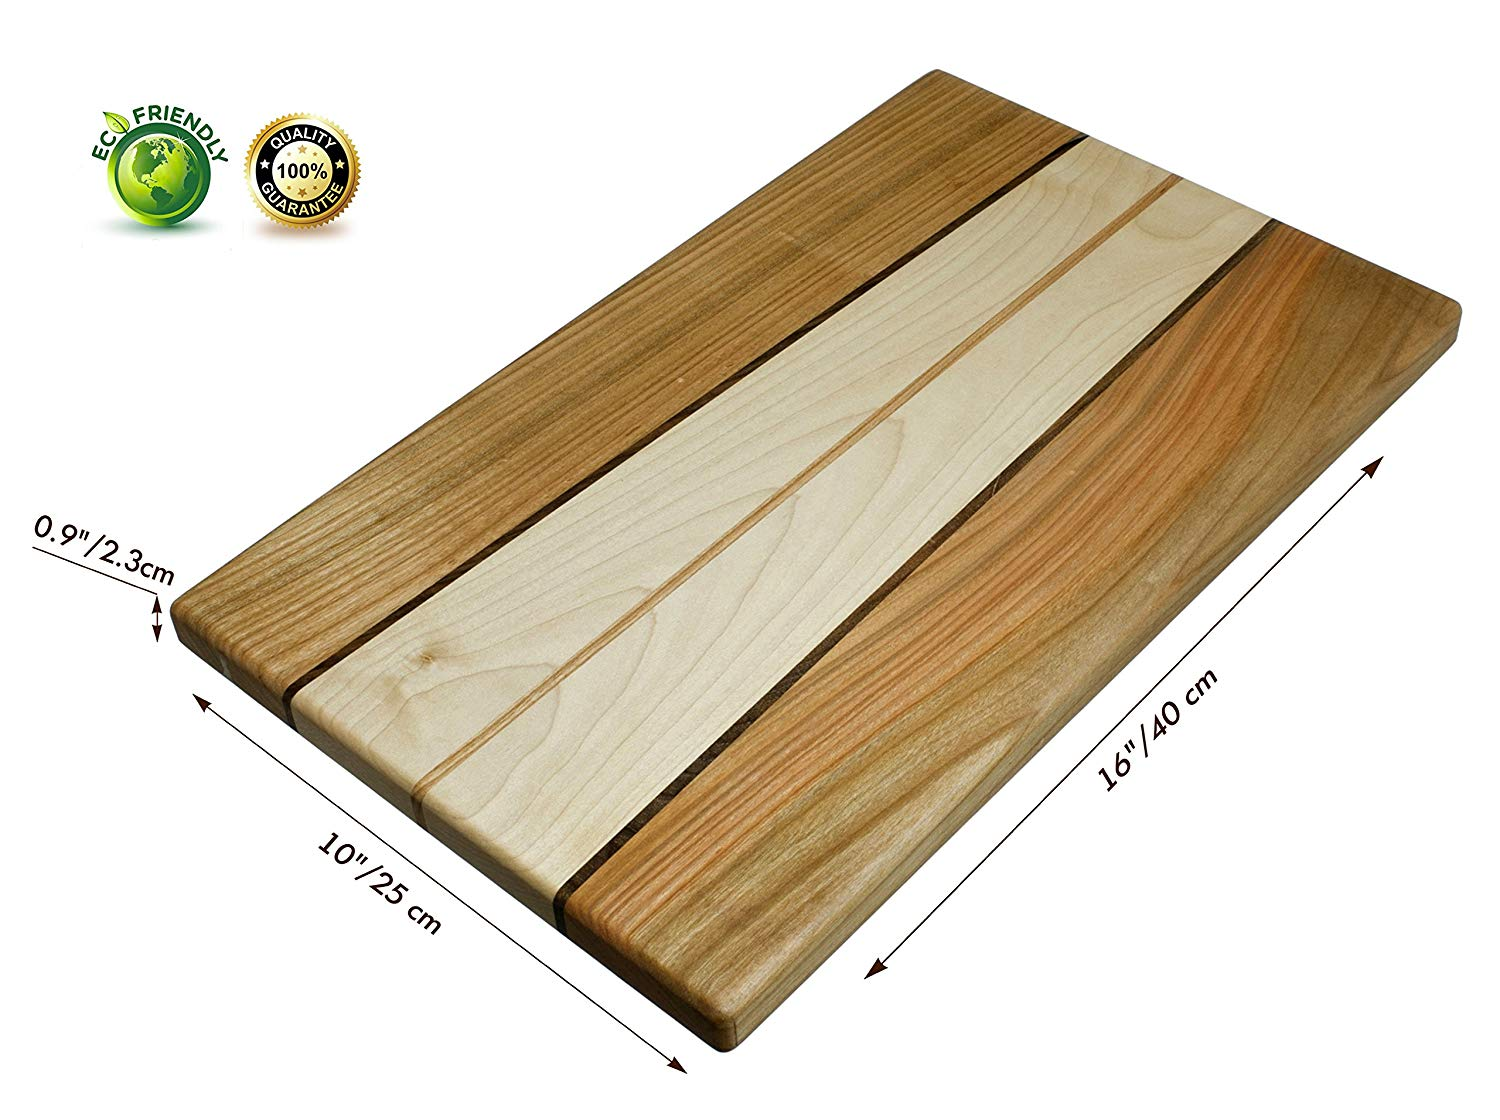 NaturalDesign Maple, Walnut, and Cherry Hardwood Chopping Board